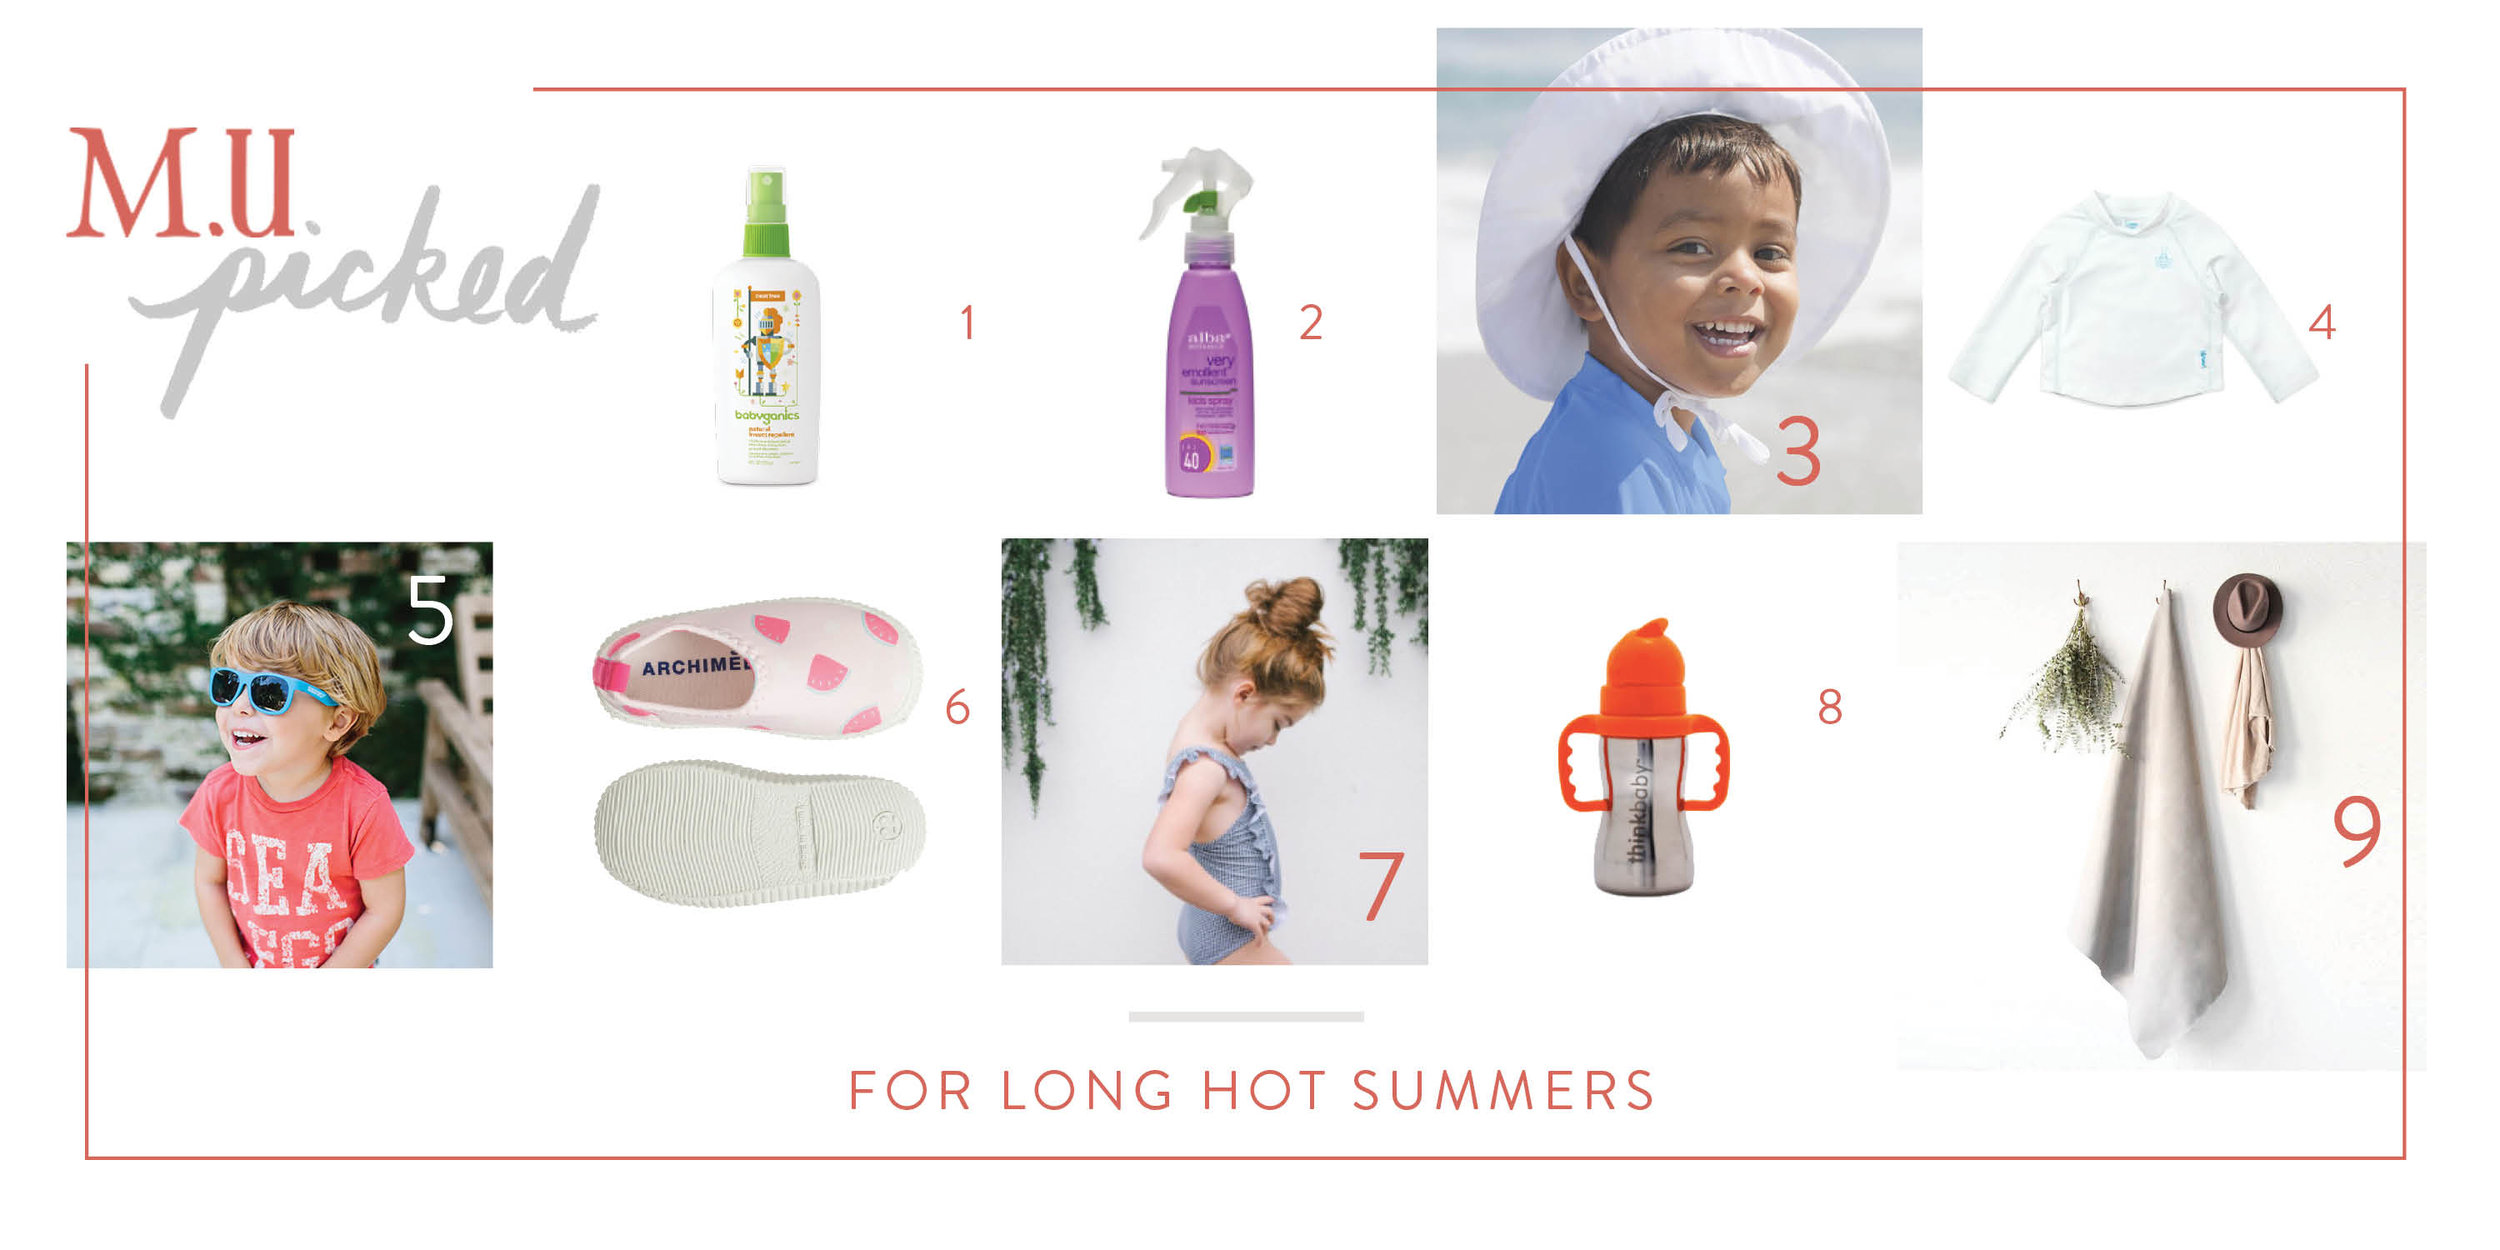 1.   Babyganics Natural DEET-Free Insect Repellent   2.  Alba Botanica Suscreen Spray SPF 40   3.  iPlay Baby & Toddler sun hat   4.  iPlay Baby & Toddler Breatheasy Sun Protection Shirt   5.  Babiators Original Navigator Sunglasses   6.   Archimede Acqua Shoes   7.  Minnow Swim Boys & Girls Collection   8.  Think Baby Steel Sippy Cup   9.  Gathre All Purpose Mats  (we also love the  Skip Hop Unisex Picnic Blanket & Cooler )